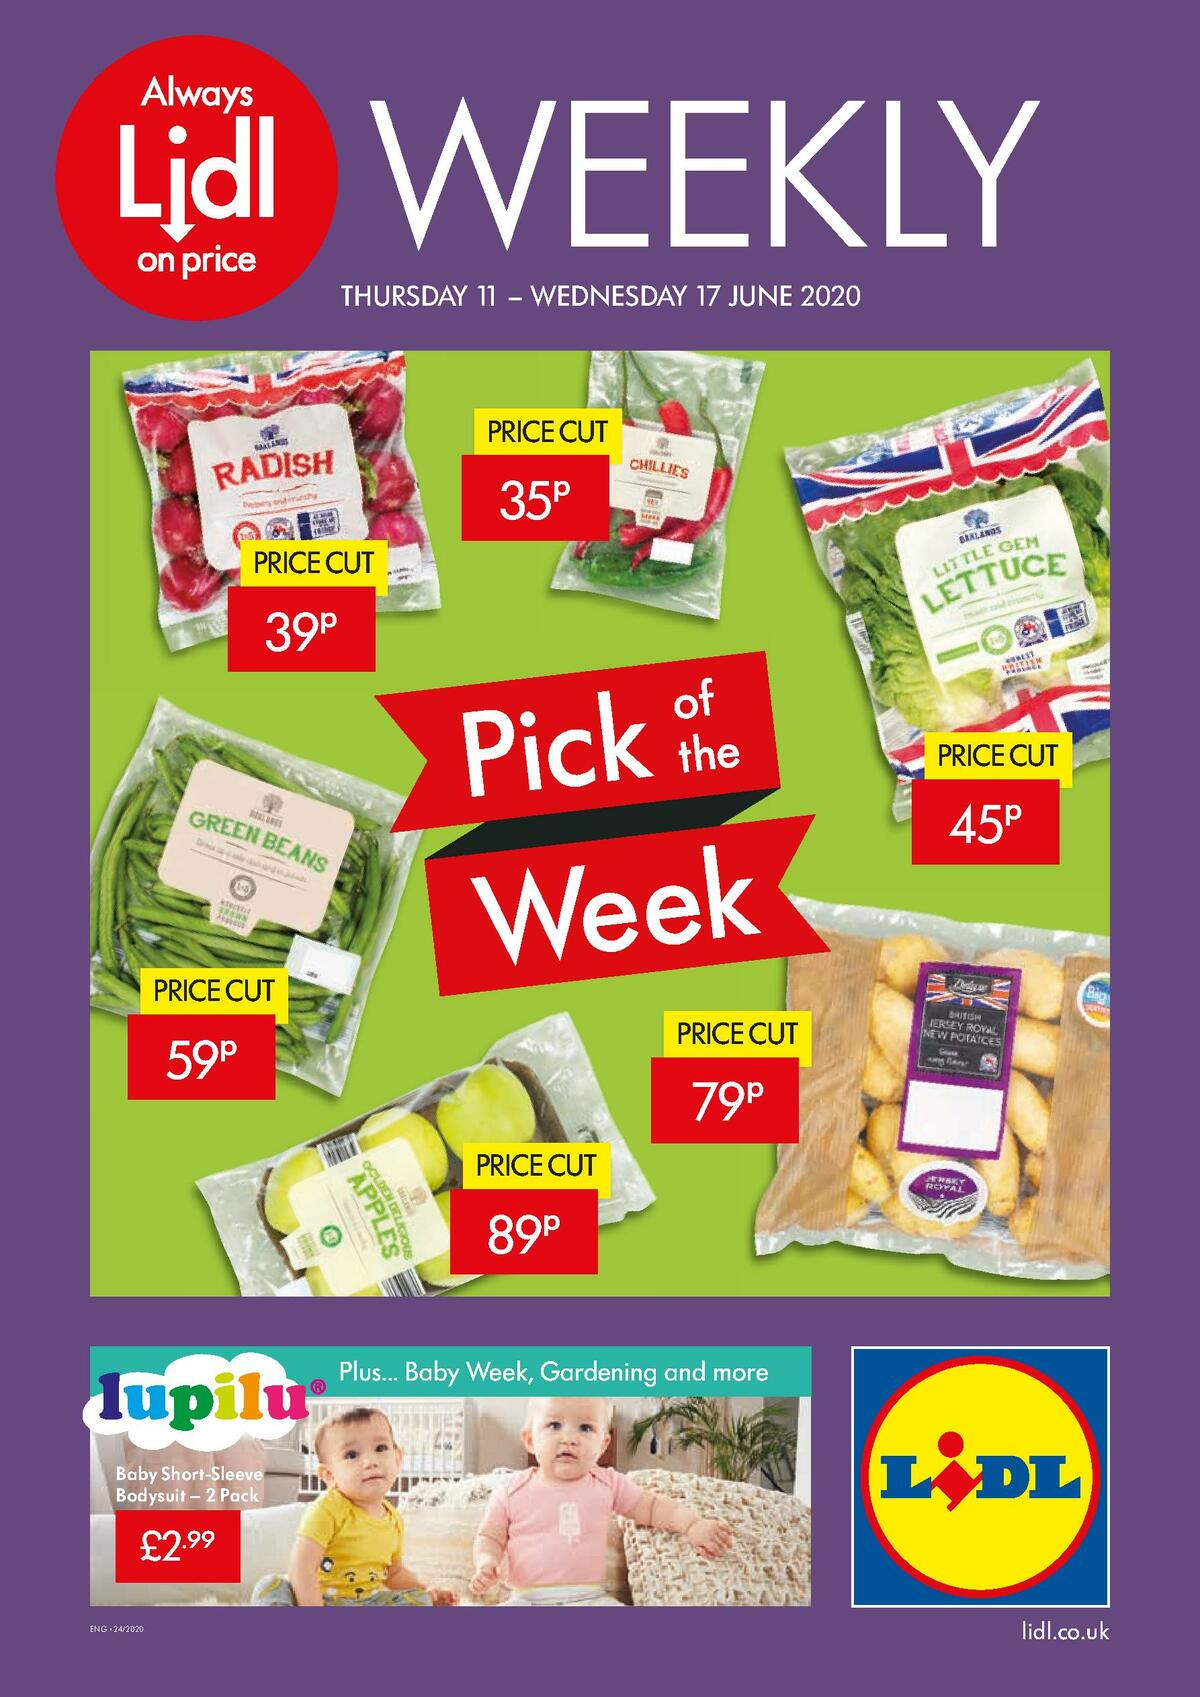 LIDL Offers from June 11